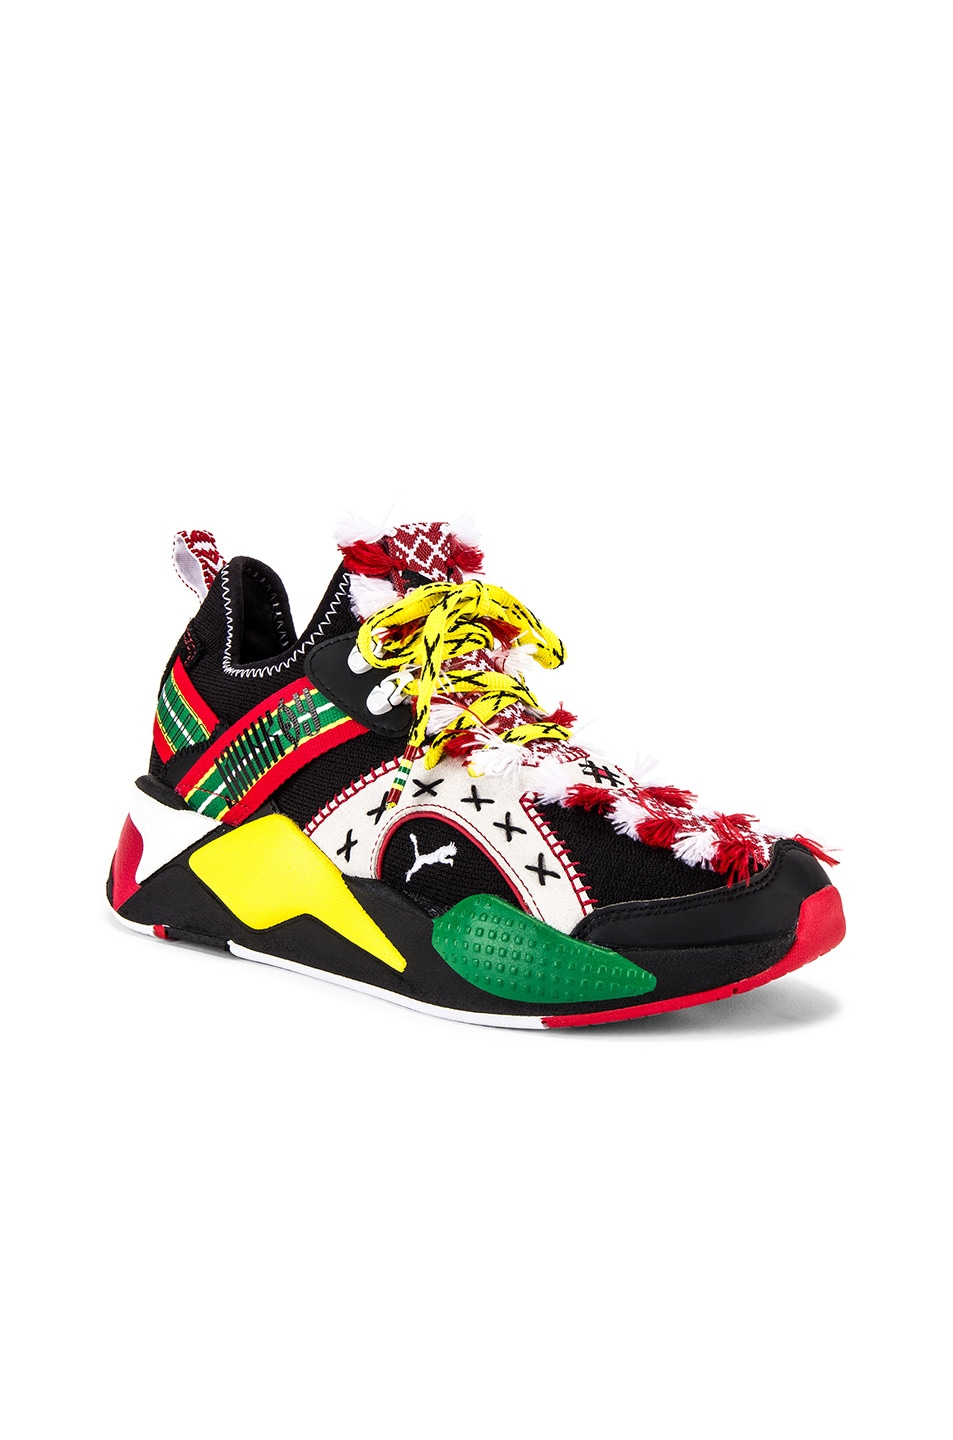 Image 1 of Puma Select RS-X Knit Jahnkoy in Puma Black